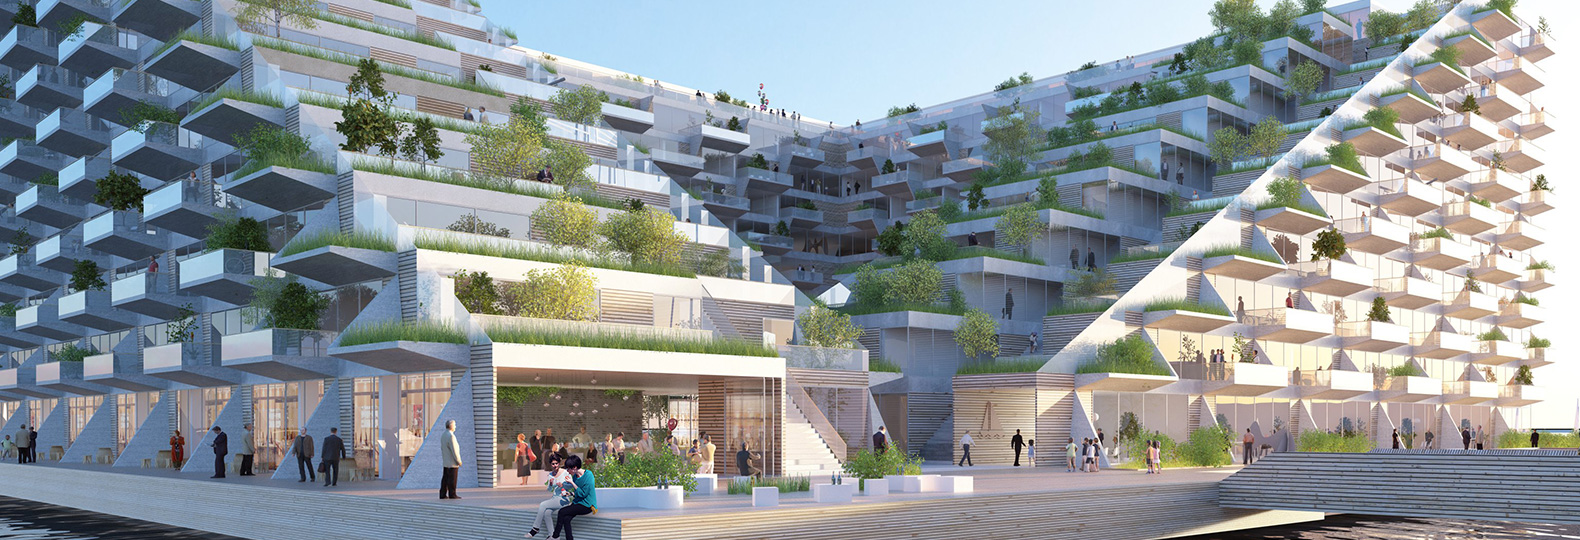 sluishuis-by-big-and-barcode-architects-full-width-tall-1